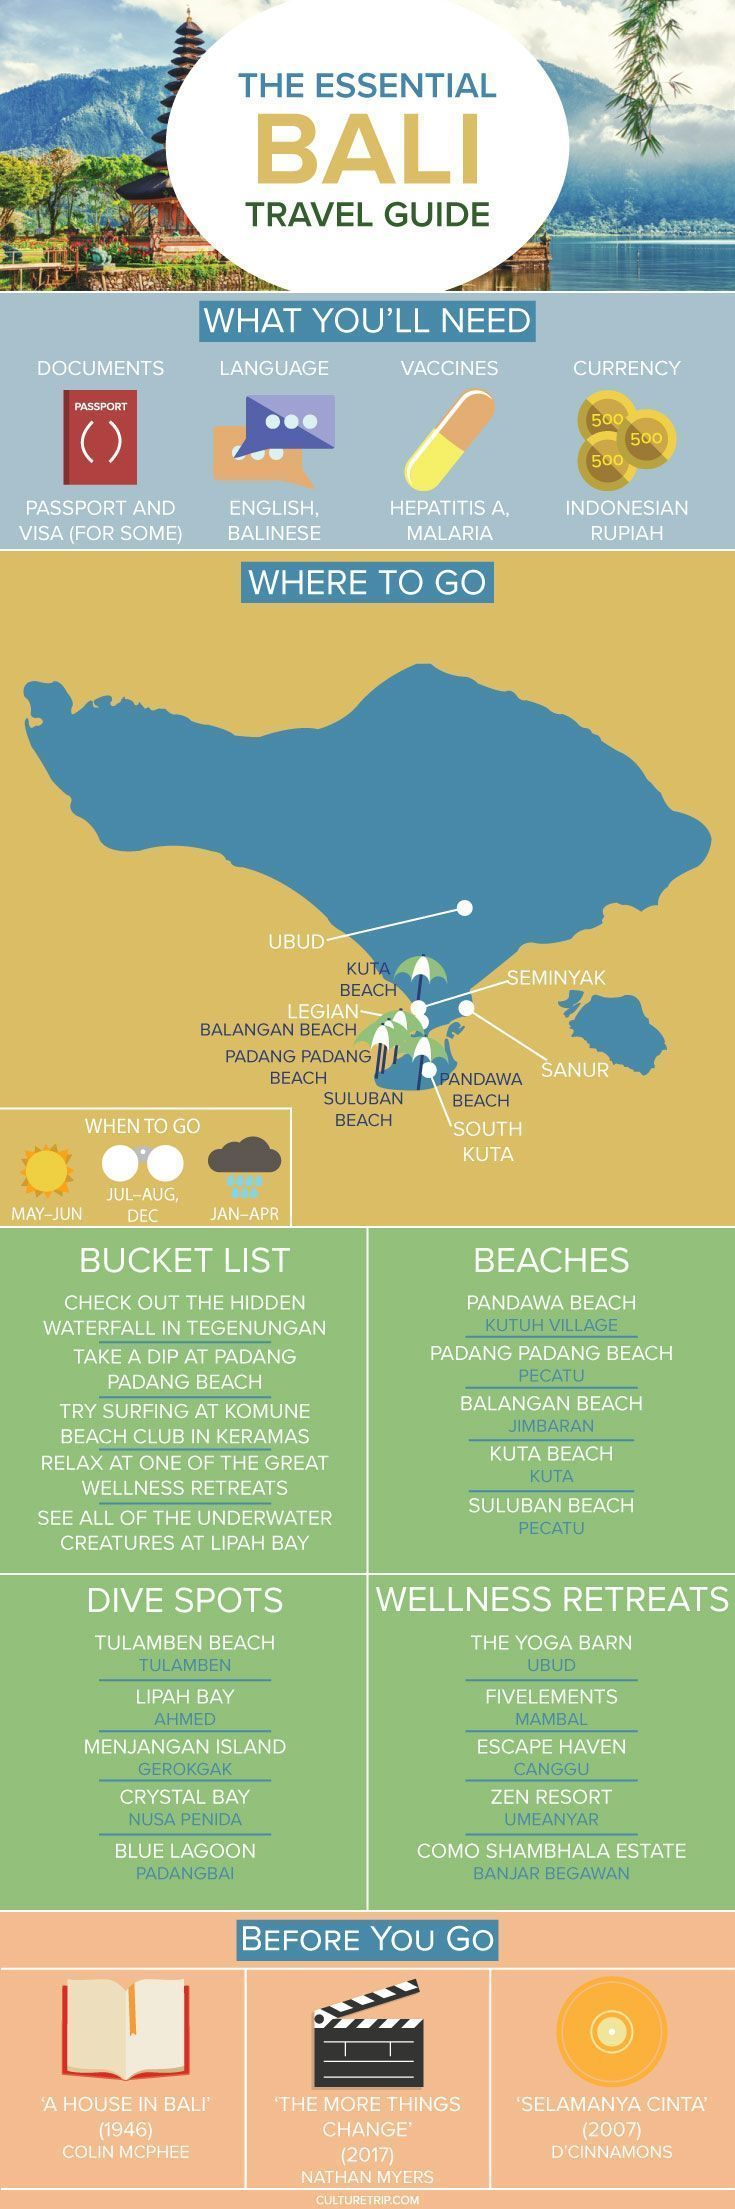 The main travel guide for Bali (infographic) Pinterest: Cultural Tour - Kyler Muller Blog -  The main travel guide for Bali (infographic) Pinterest: cultural trip – #Bali #Of the #For #Infog - #AsiaTravel #Bali #Blog #BudgetTravel #Cultural #CultureTravel #GUIDE #infographic #Kyler #Main #Muller #NightlifeTravel #Pinterest #RoadTrips #tour #Travel #TravelTips